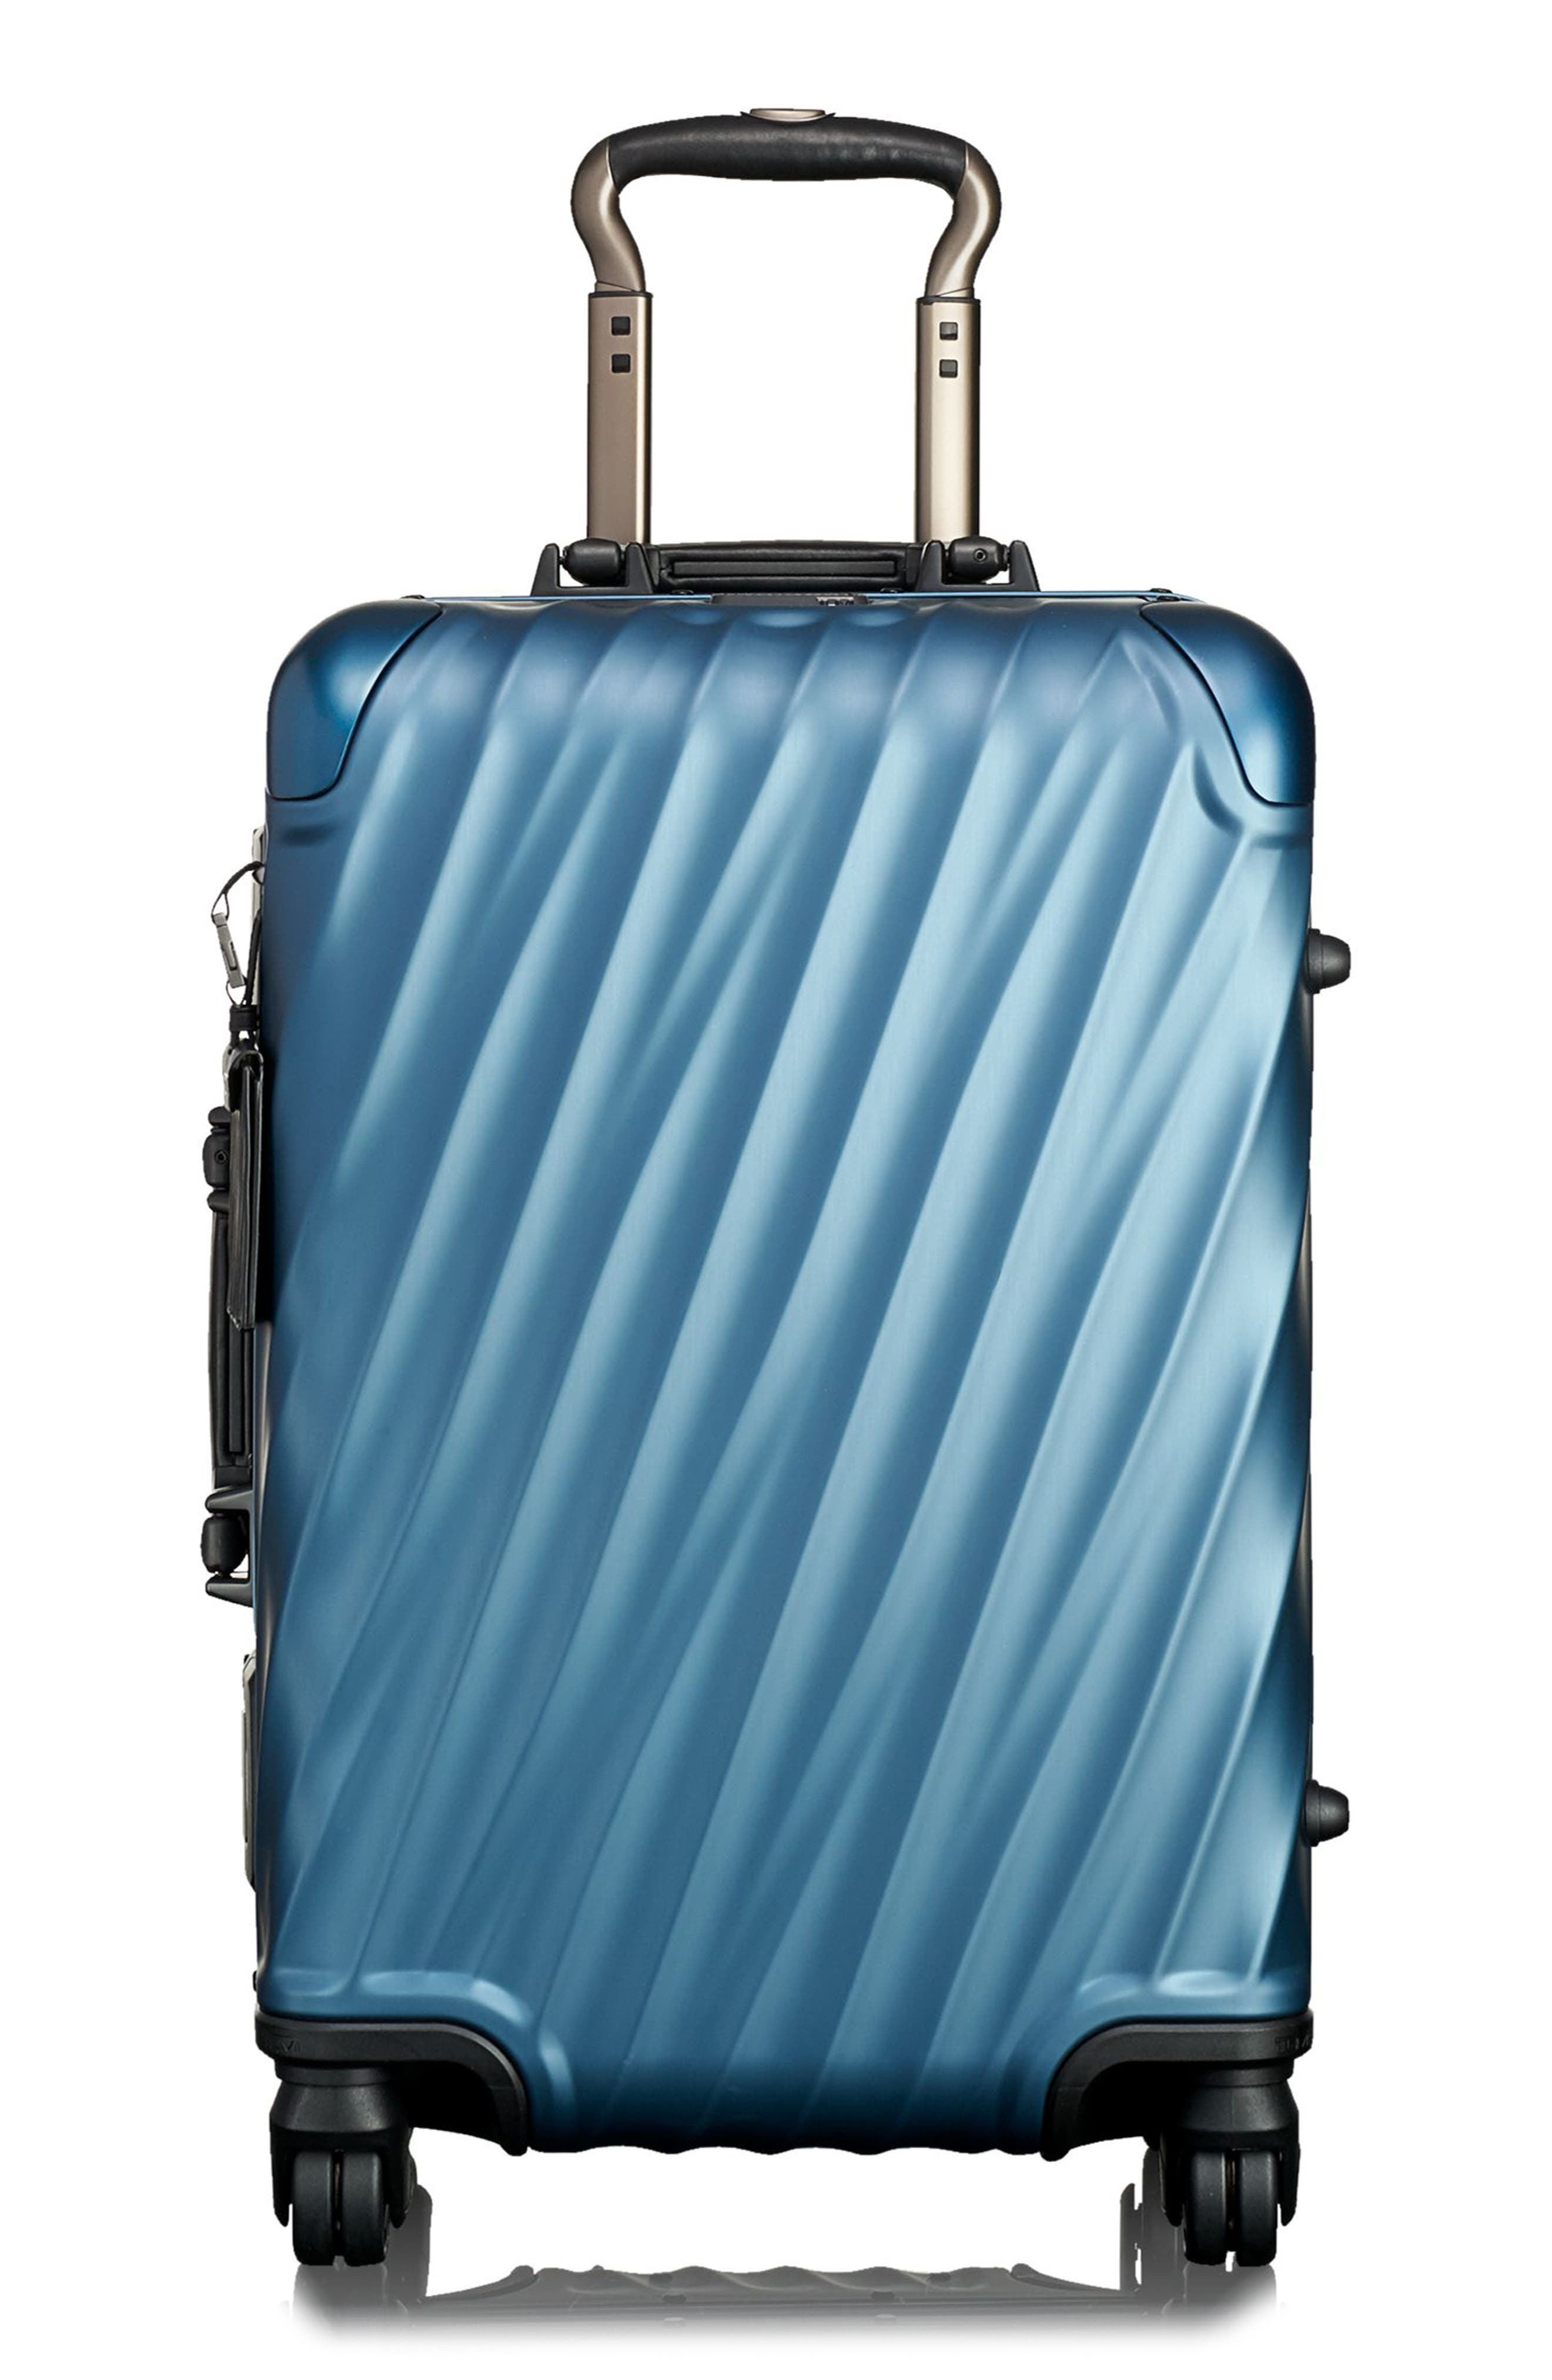 19 Degree 22 Inch International Wheeled Aluminum Carry-On,                         Main,                         color, Blue